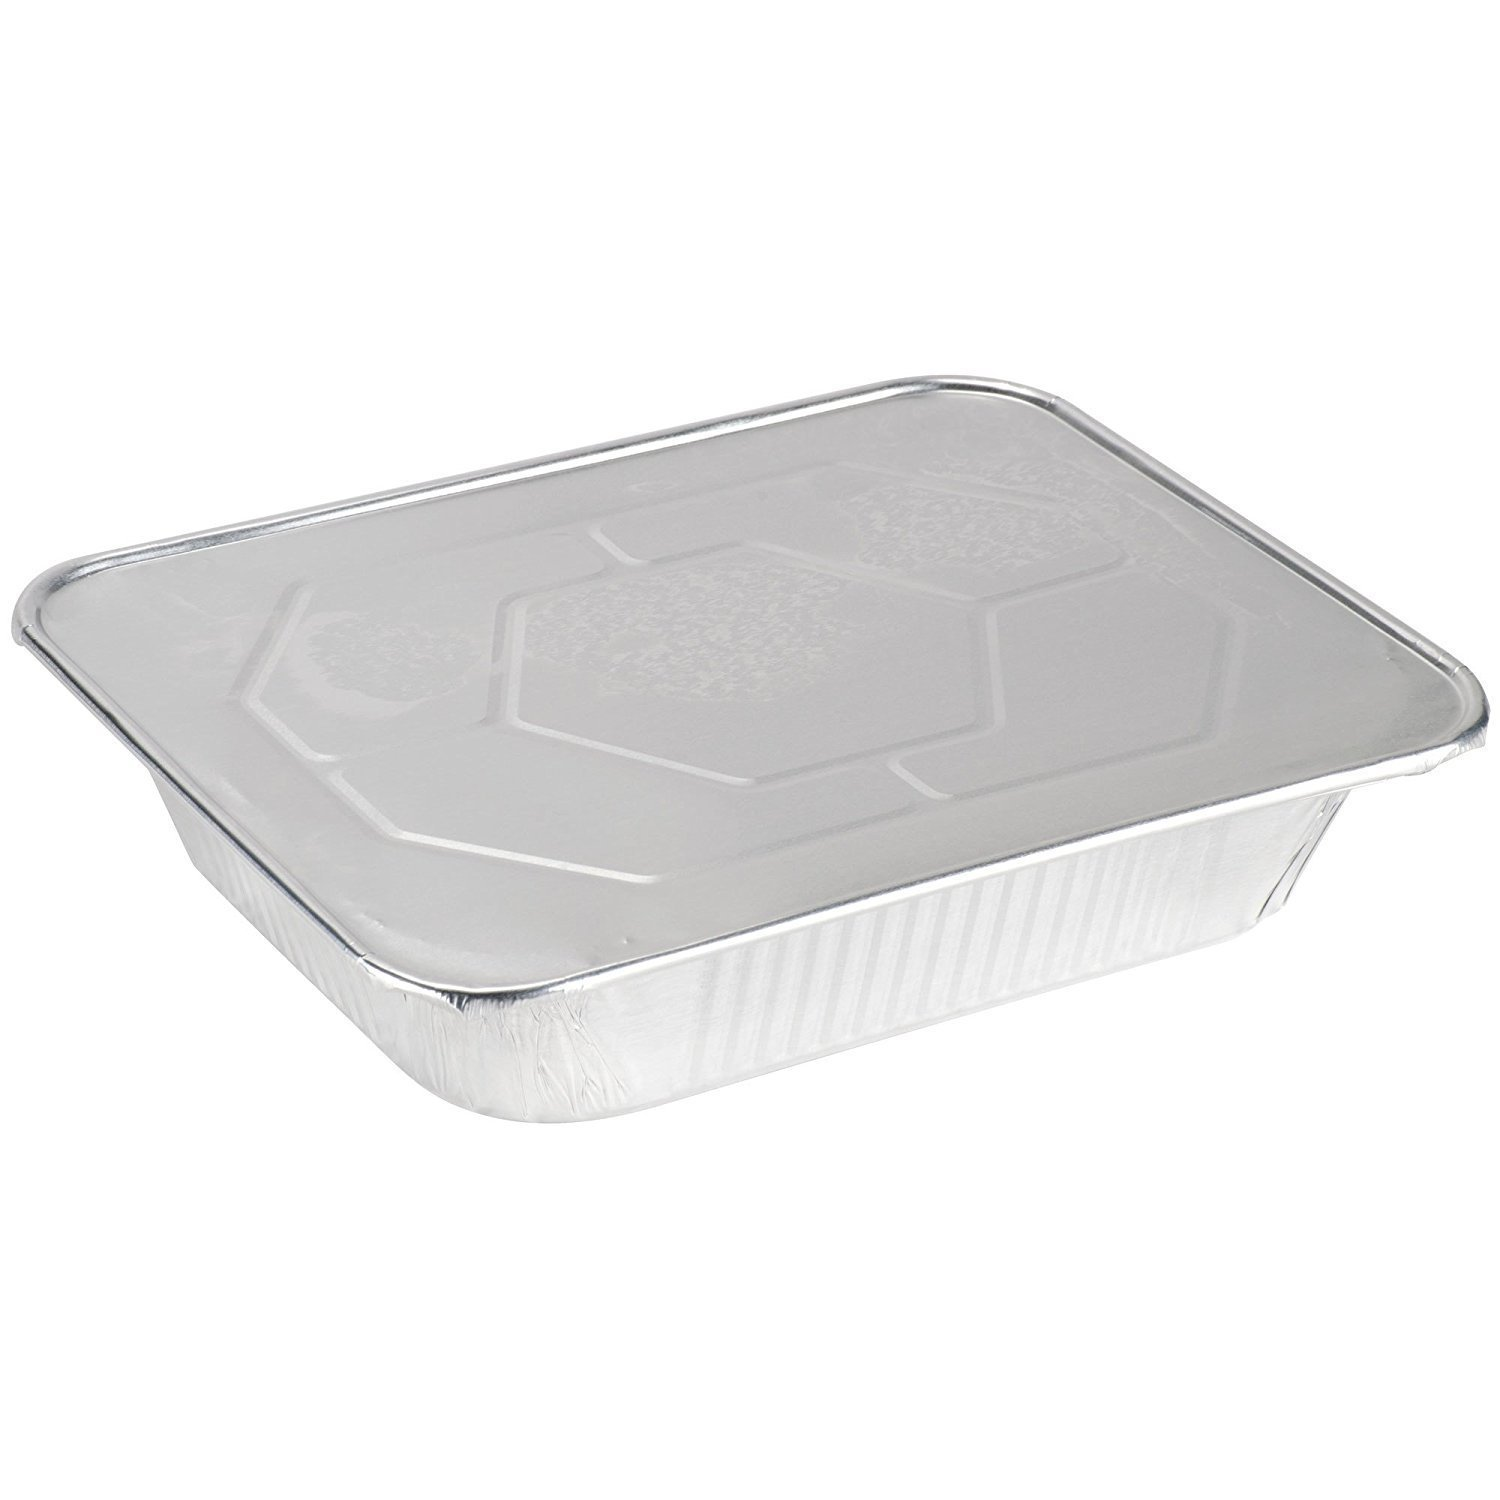 20-Pack of Disposable 9 x 13 Half-Size Deep Aluminum Foil Food Pans with Lid Covers - Eco-Friendly Cooking and Baking Storage Containers - Superior Heat Conductivity for Evenly Cooked Meals & Cakes